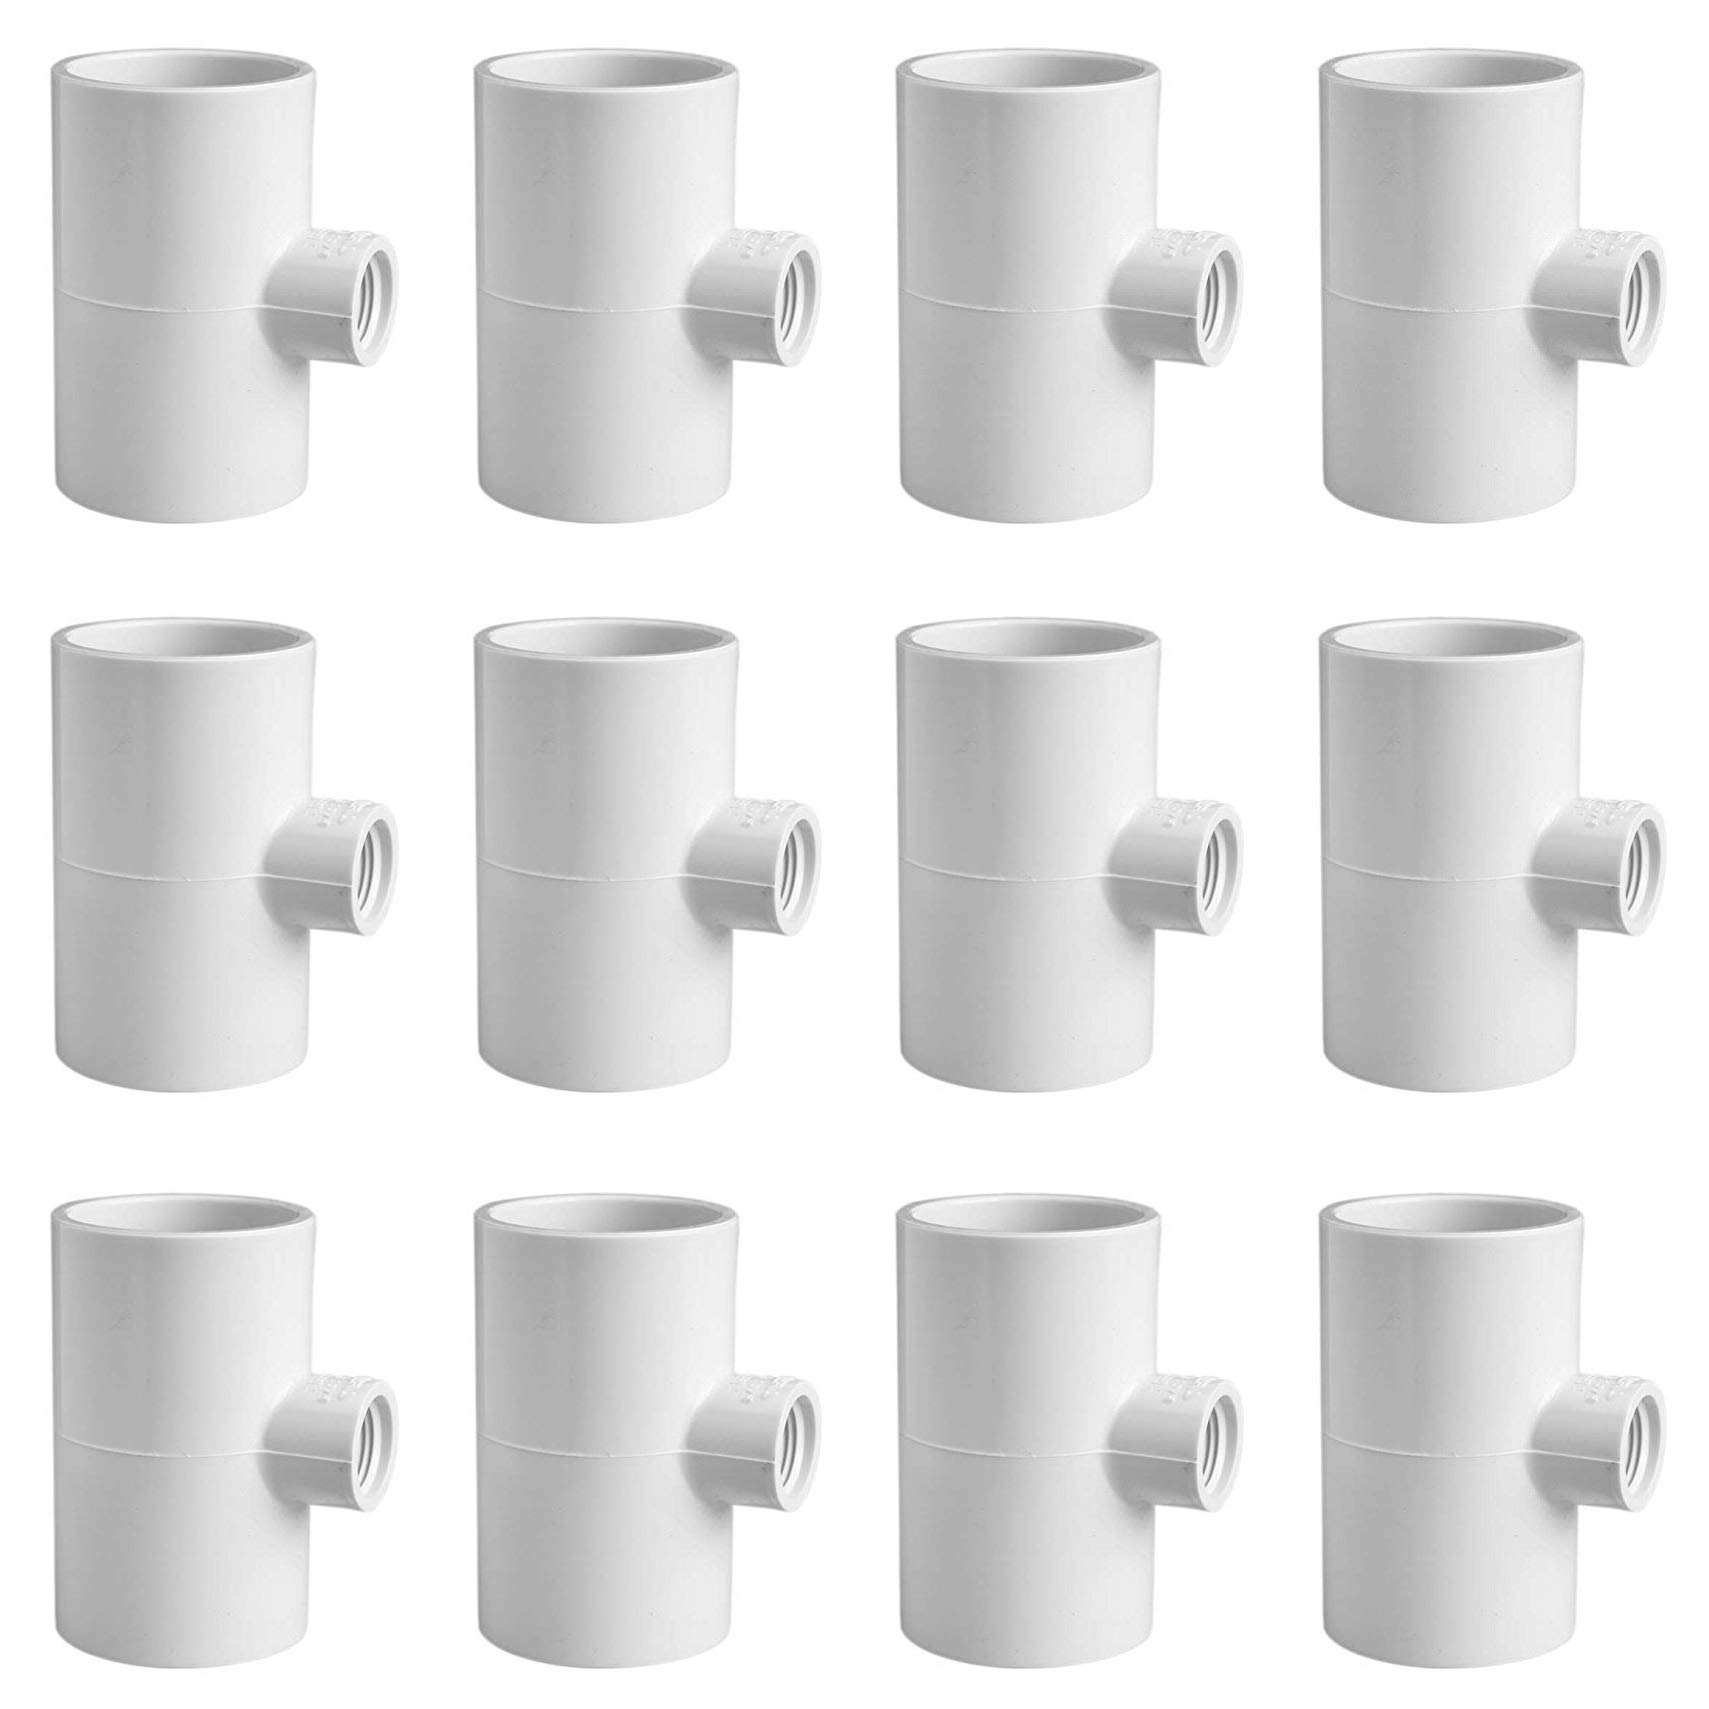 Cruzadel 12 Pack - PVC Tee Fittings for Threaded Poultry Nipples Chicken Waterer - Schedule 40 PVC 1/2 inch Slip X 1/2 inch Slip X 1/8 inch FPT by Cruzadel